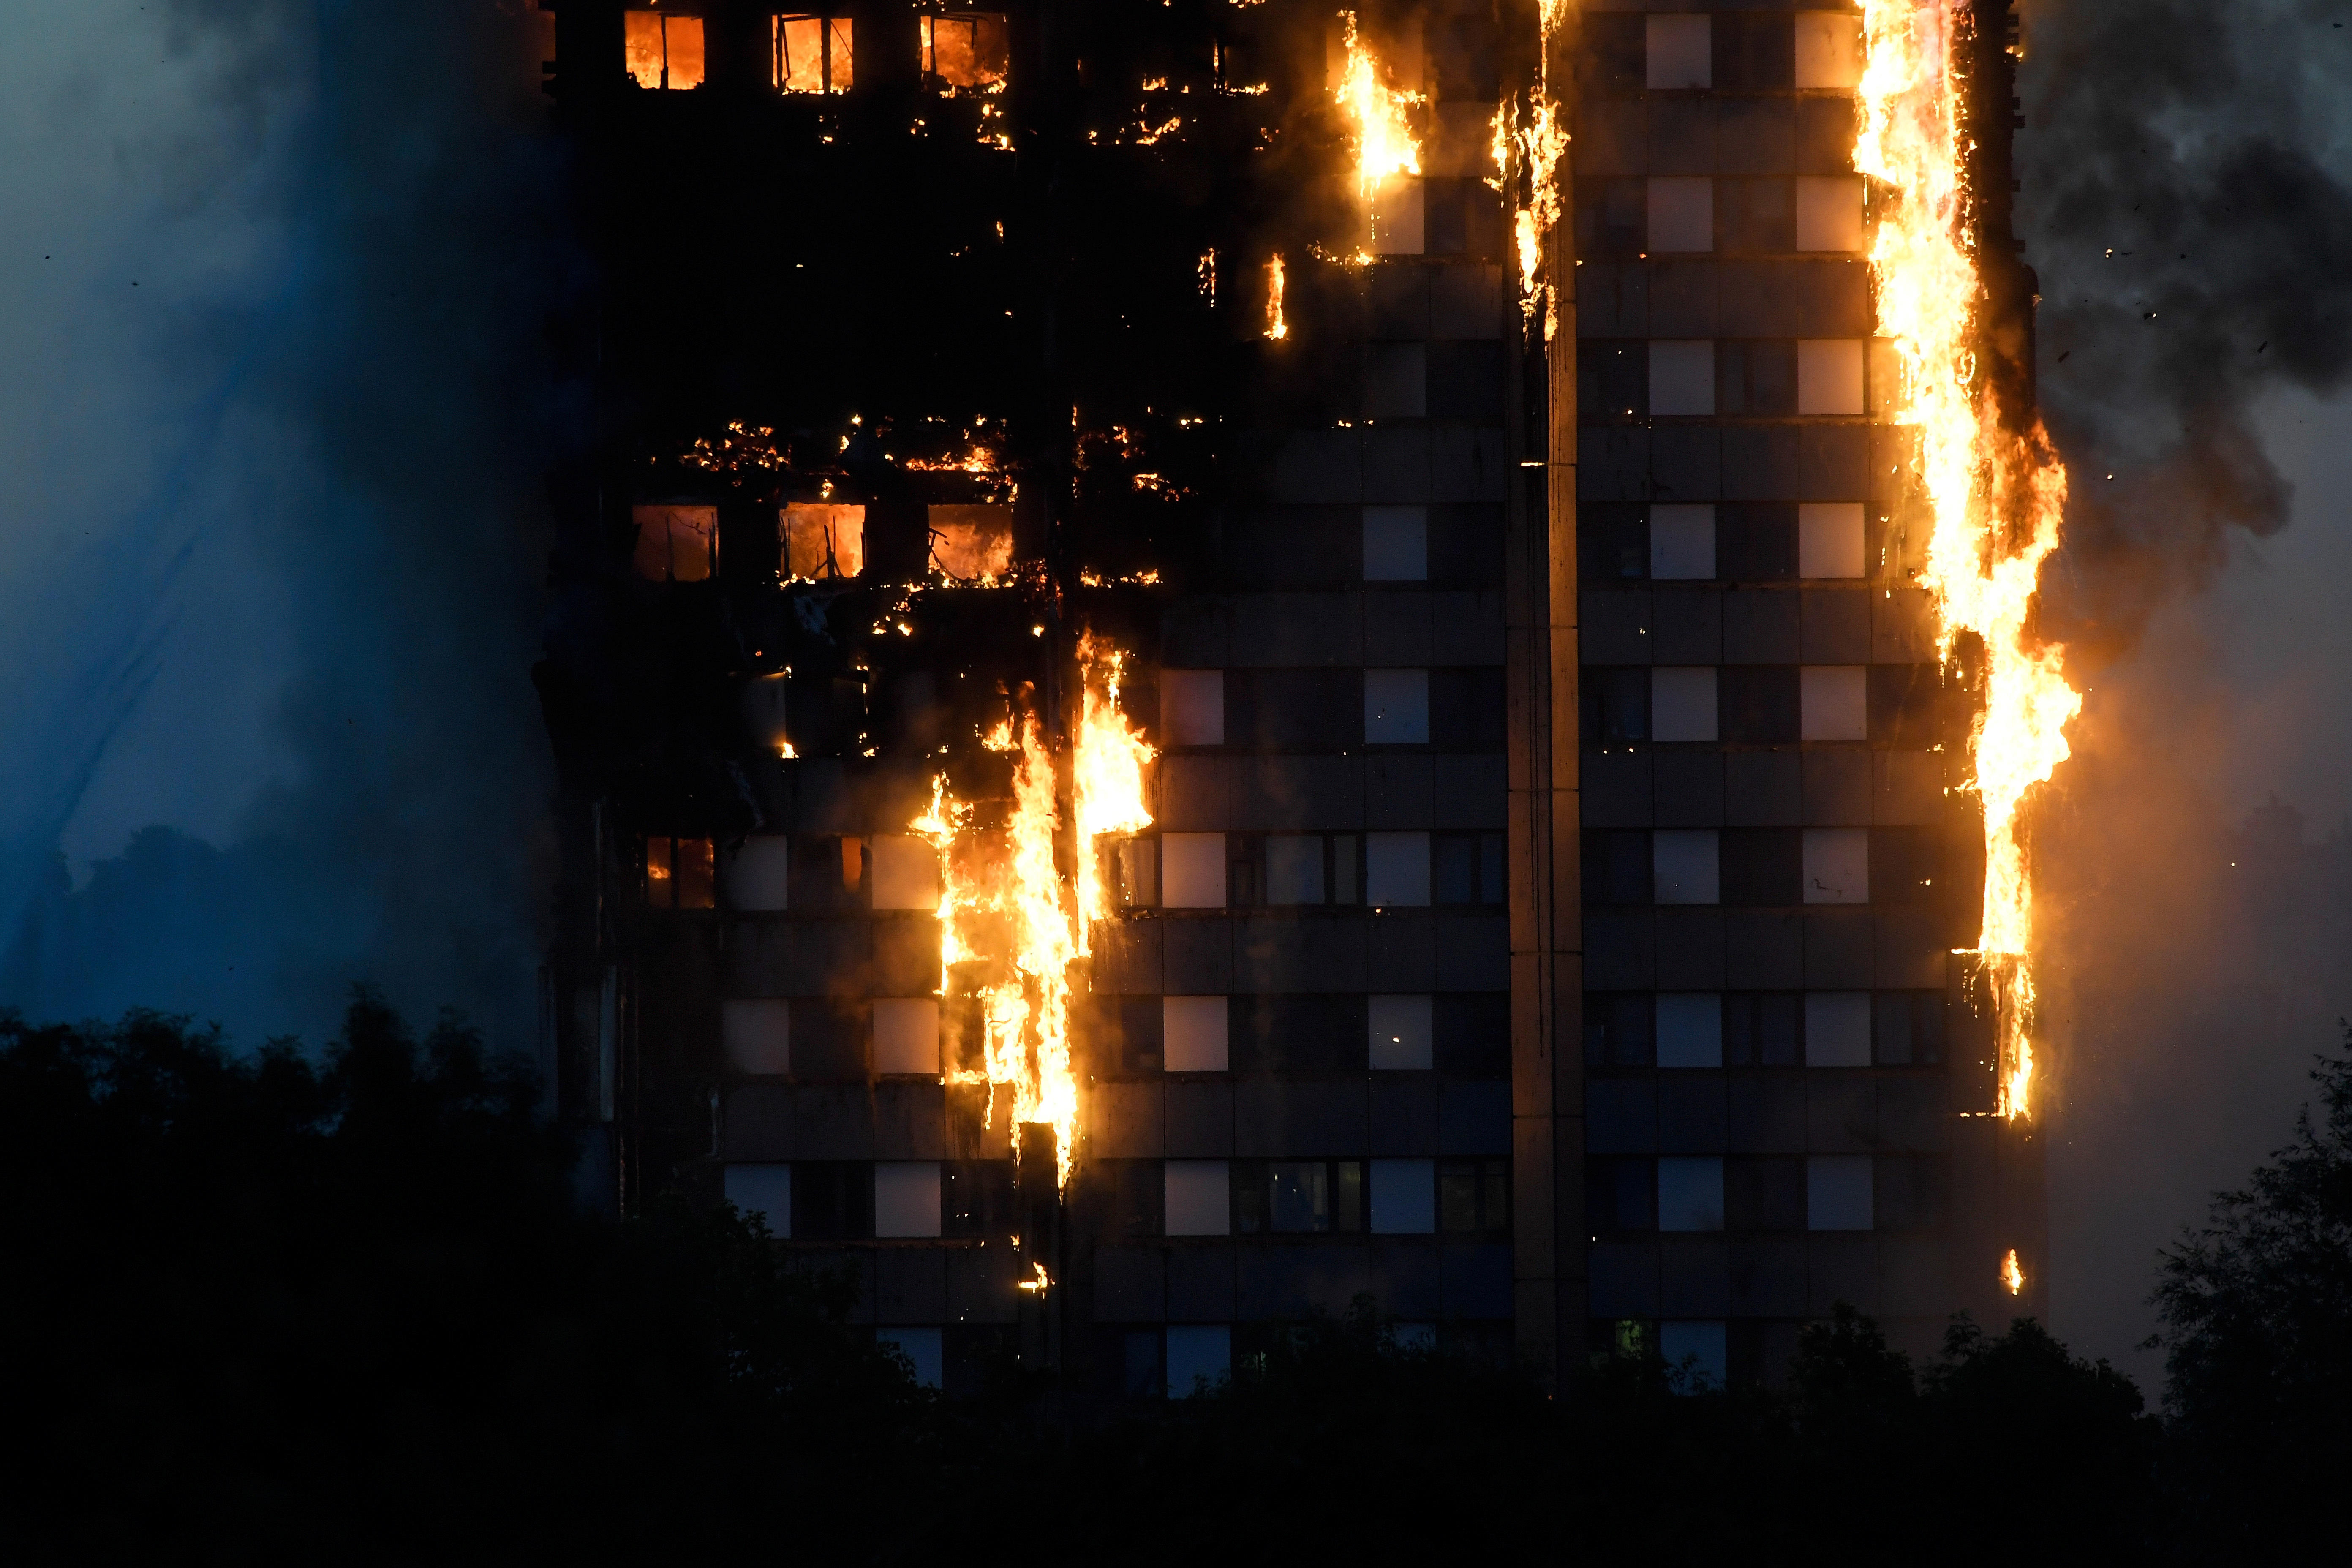 London fire - Fire in London high-rise - Pictures - CBS News